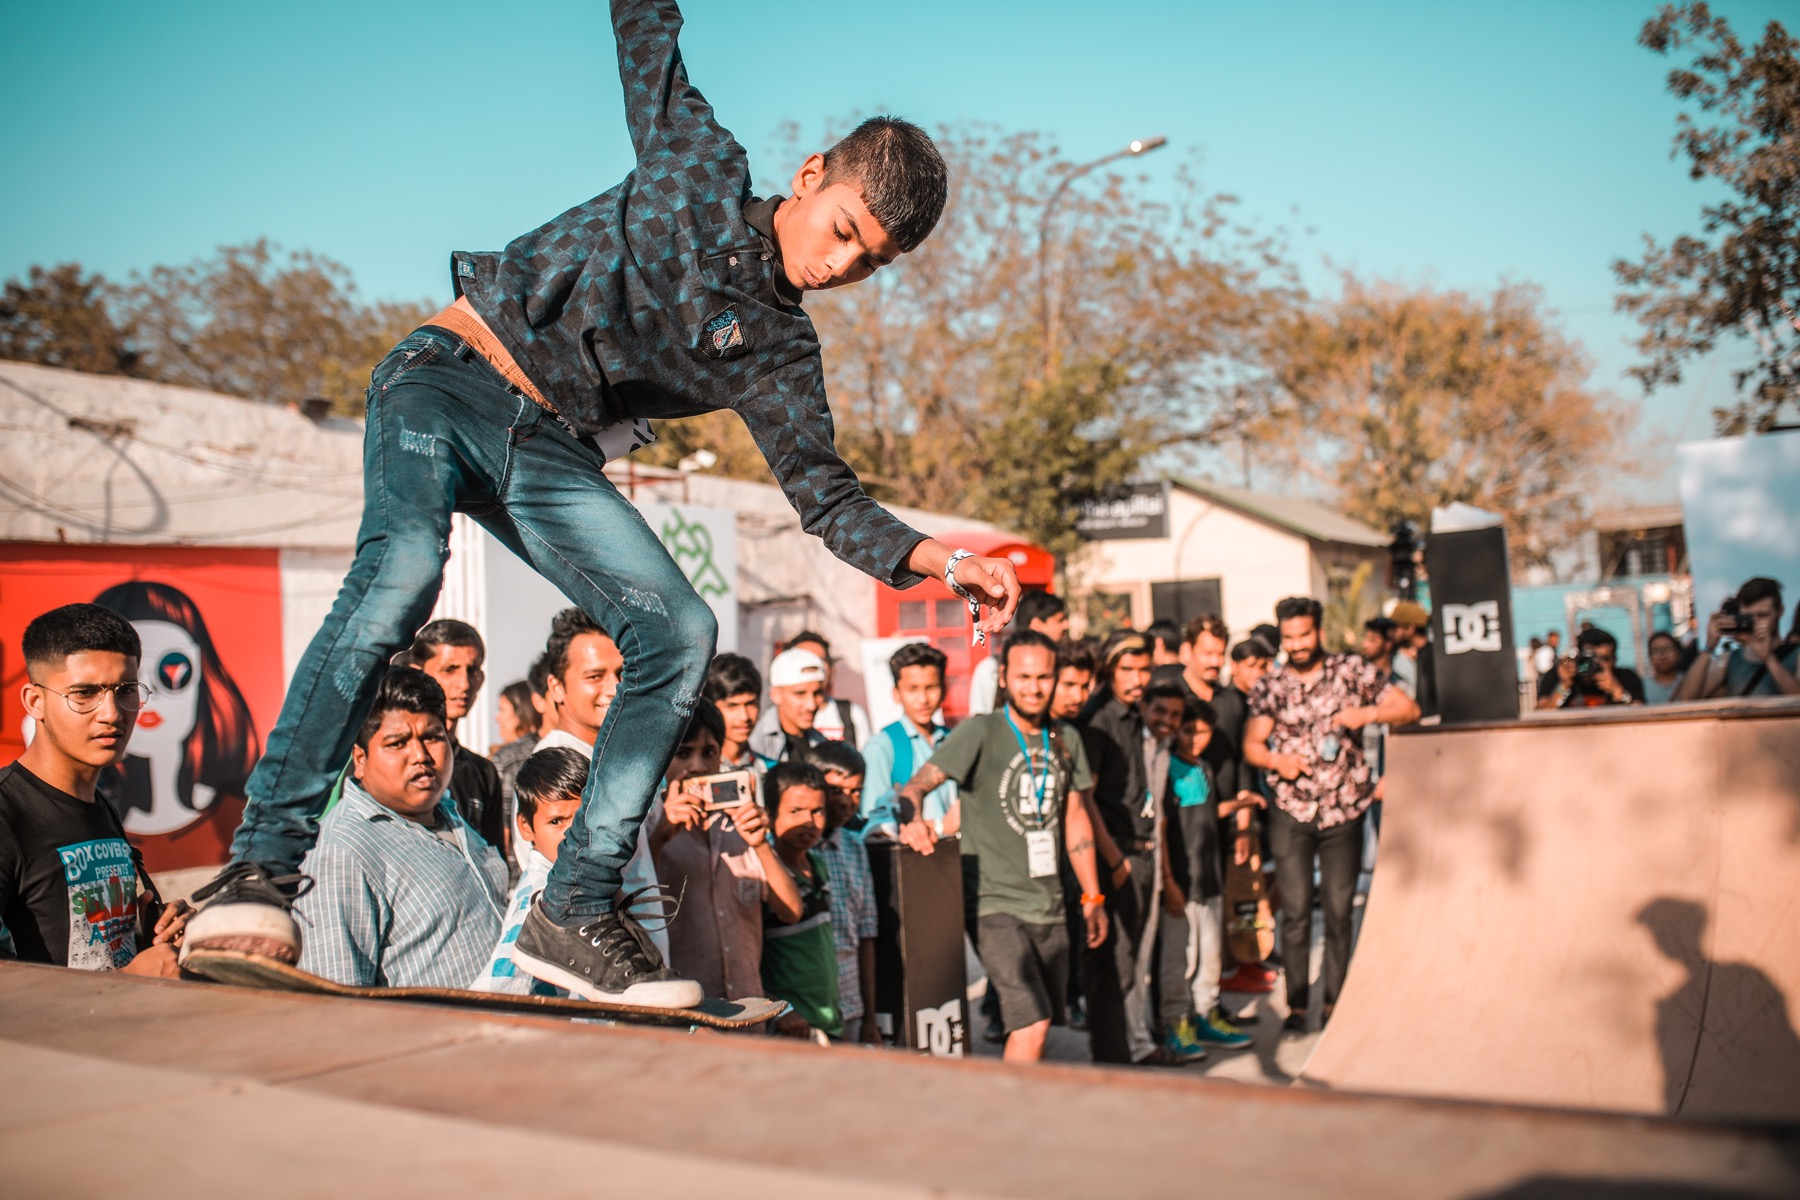 Homegrown India presents HGStreet in Mumbai on March 18, 2018, a celebration of sneaker and street culture - DC Arena brings BMX crews and skaters976A5927.jpg